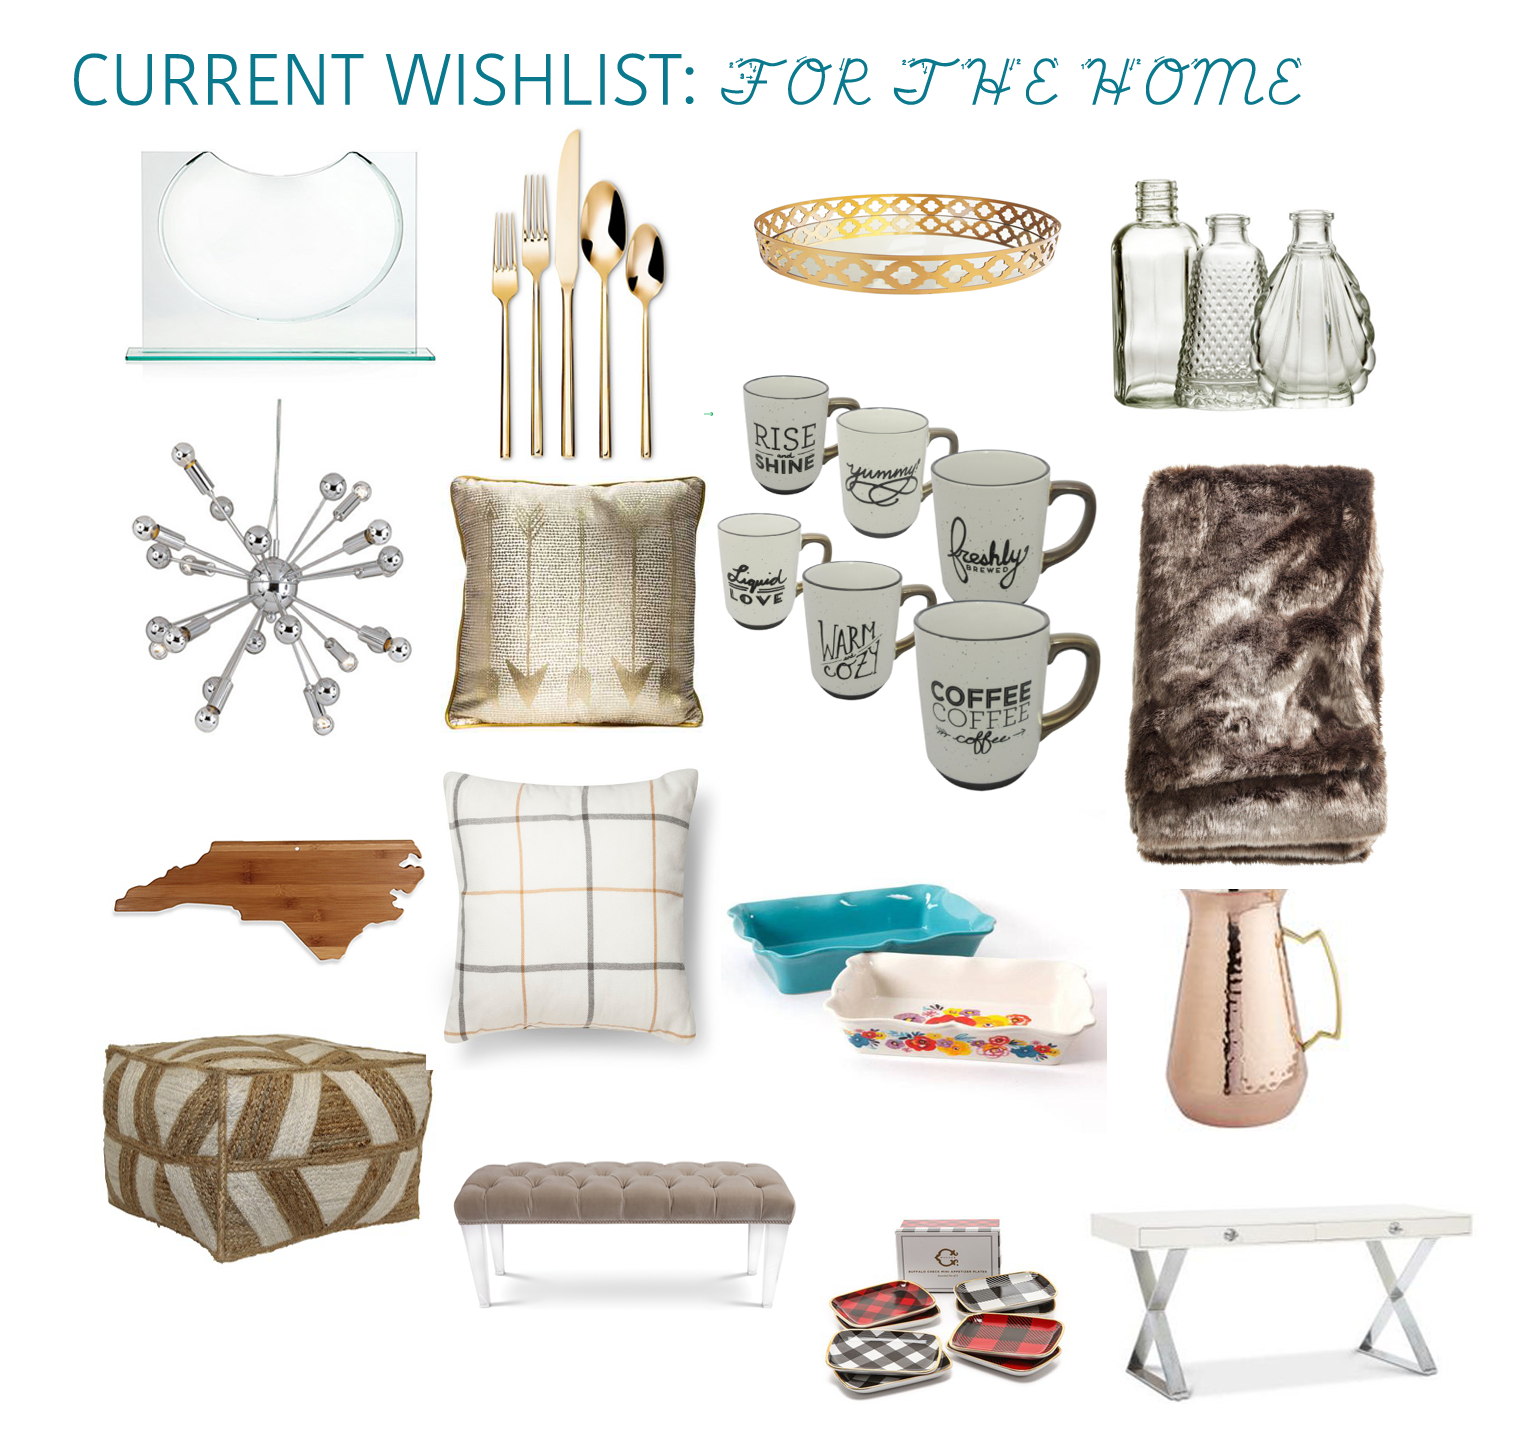 Home_Wishlist_Items_from_Target_Bedbathandbeyond_Zgallerie_CWonder_H&MHomeLine